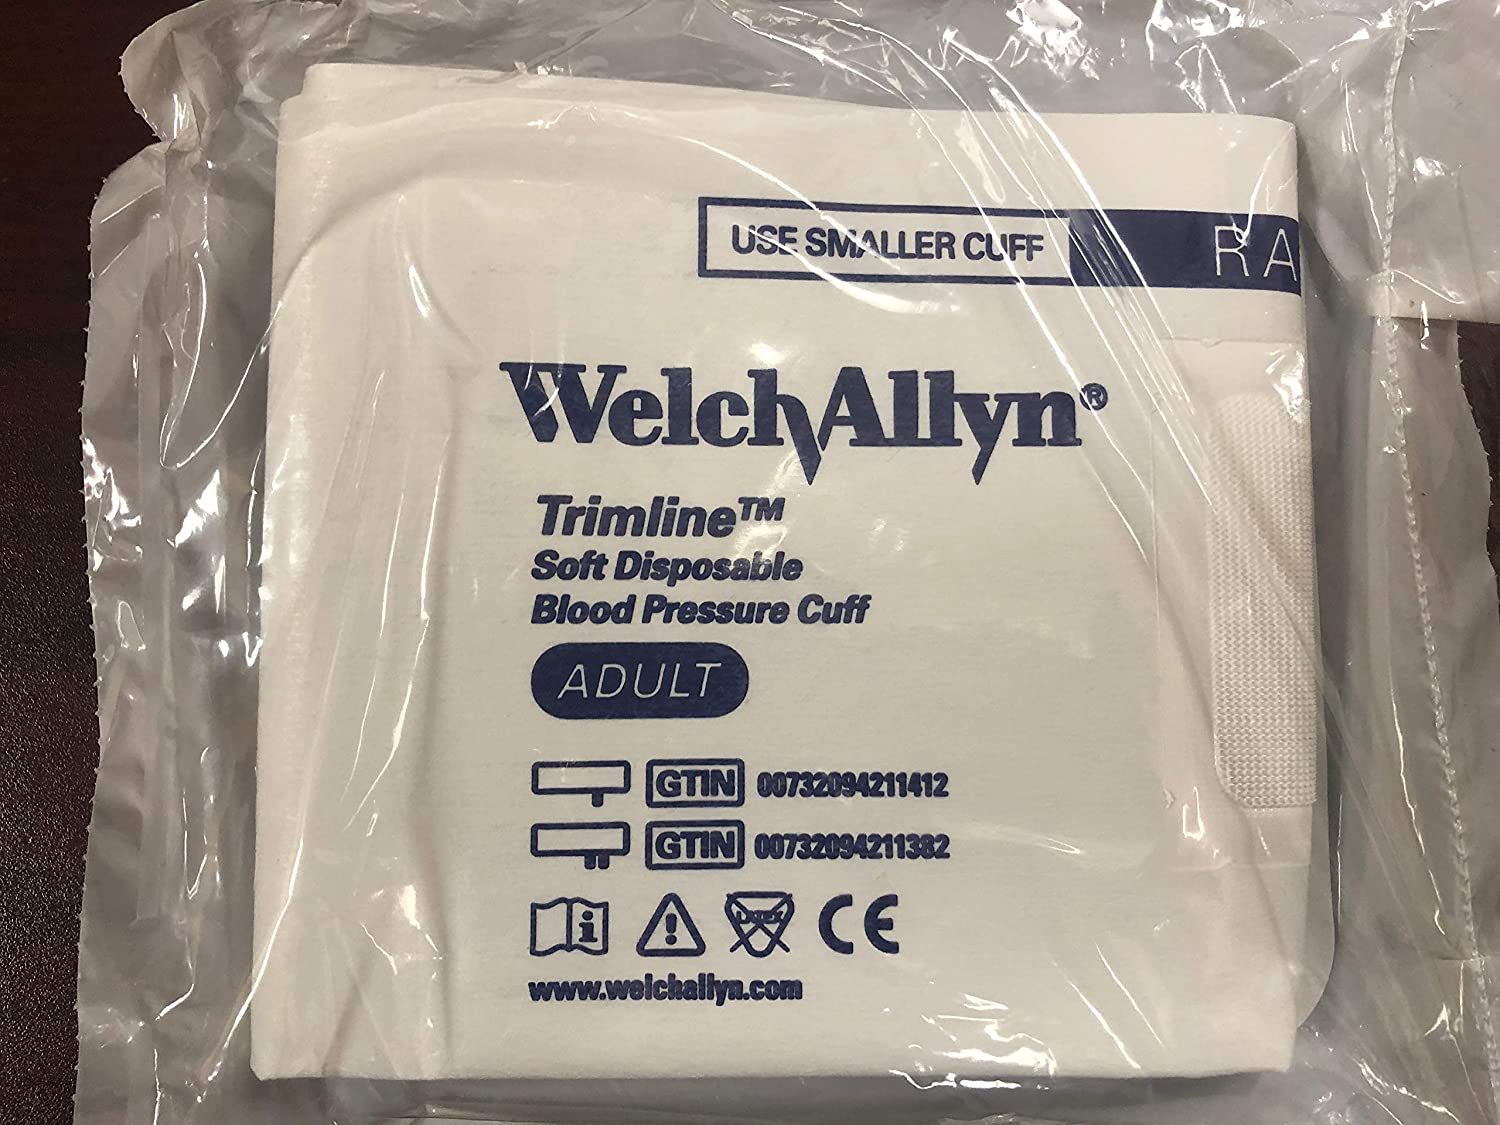 Welch Allyn 39048 Branded Quality Medical Diagnostic Products for Medical Offices Cuff Disp Adult 1Tb with Byntt Fit (Pack of 20)